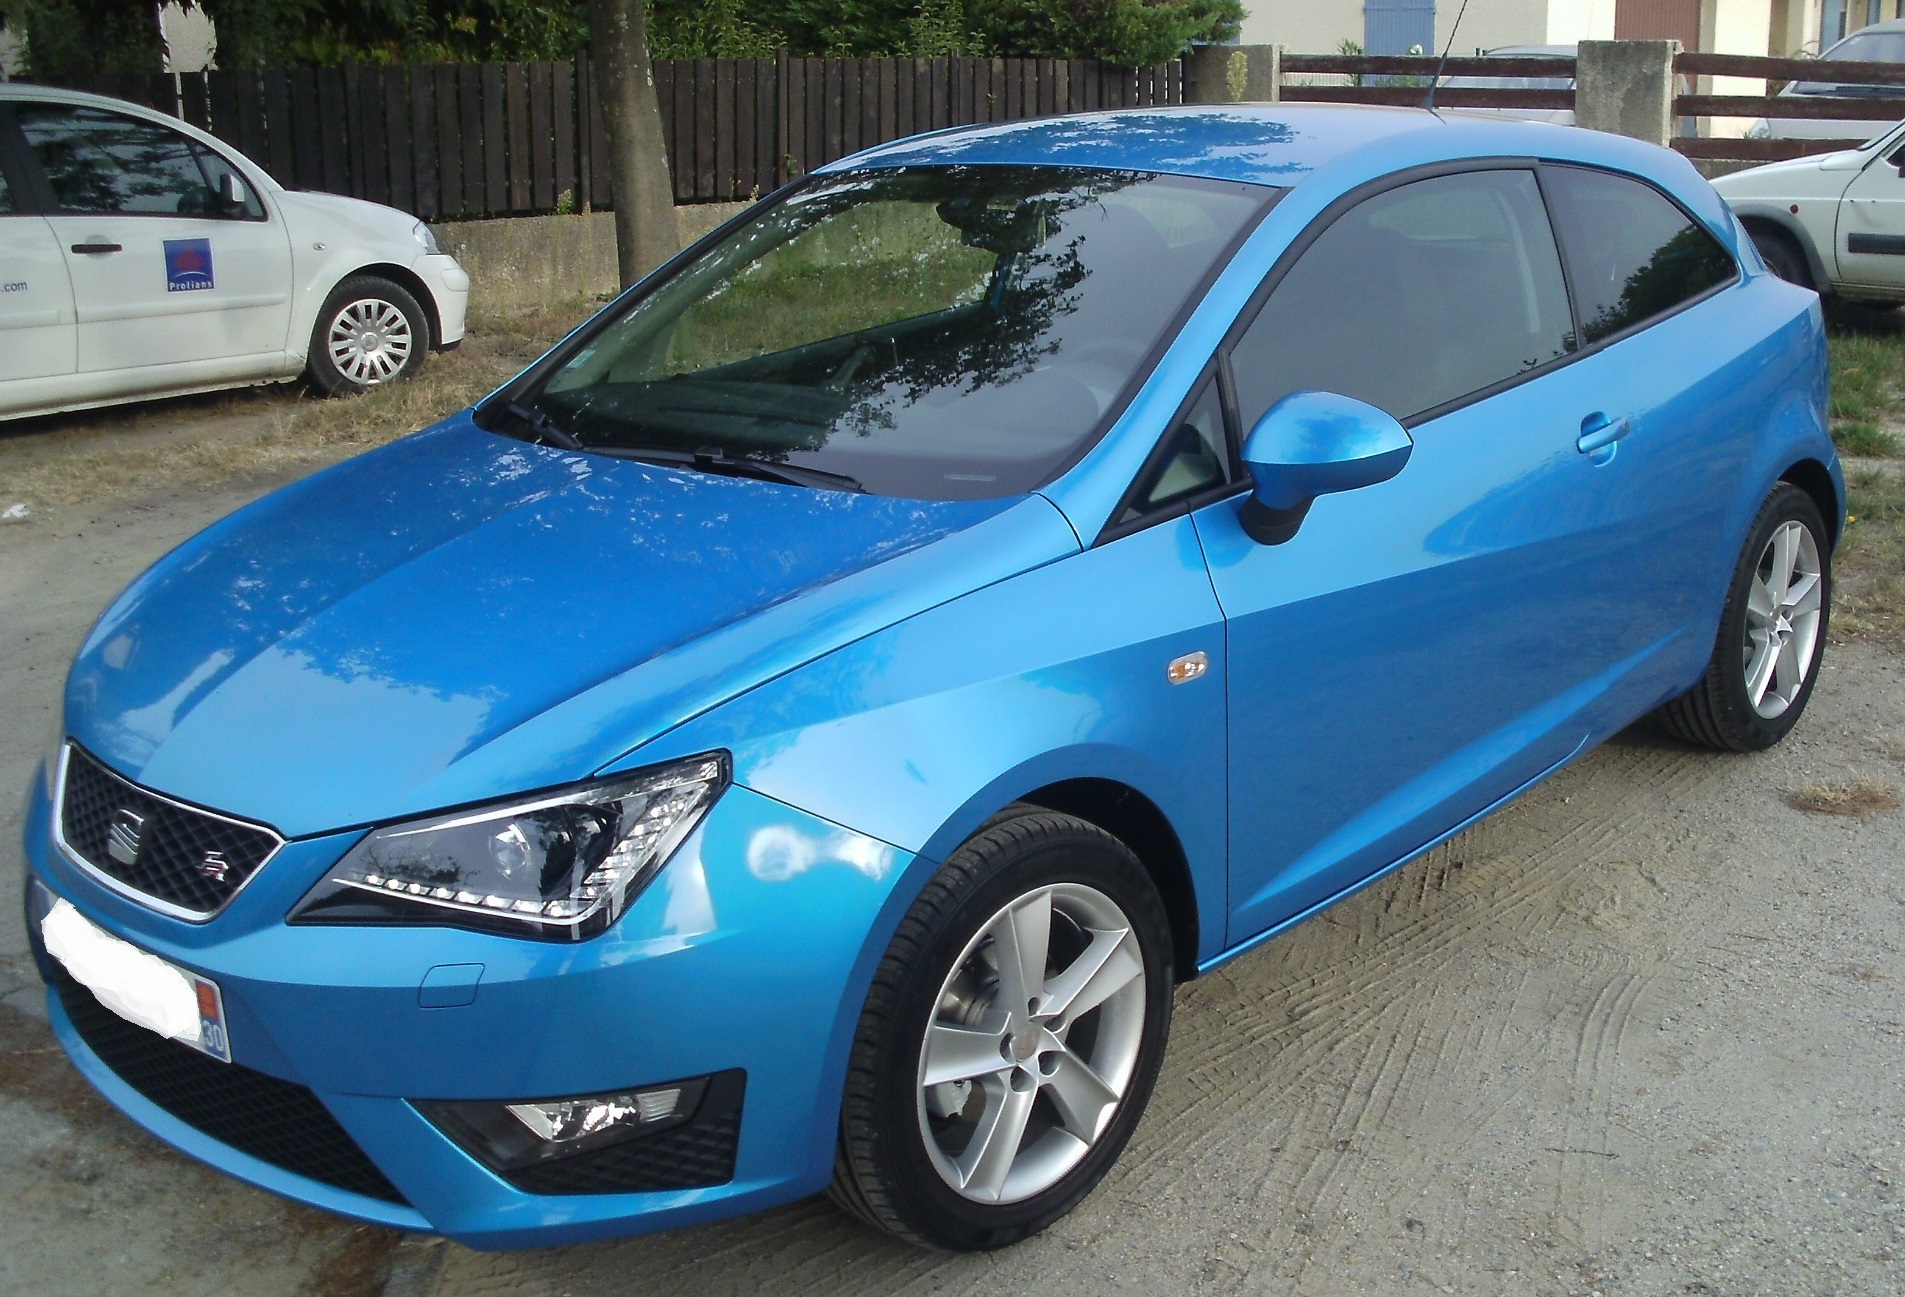 seat ibiza sc fr 105 bleu alor ibiza seat forum marques. Black Bedroom Furniture Sets. Home Design Ideas